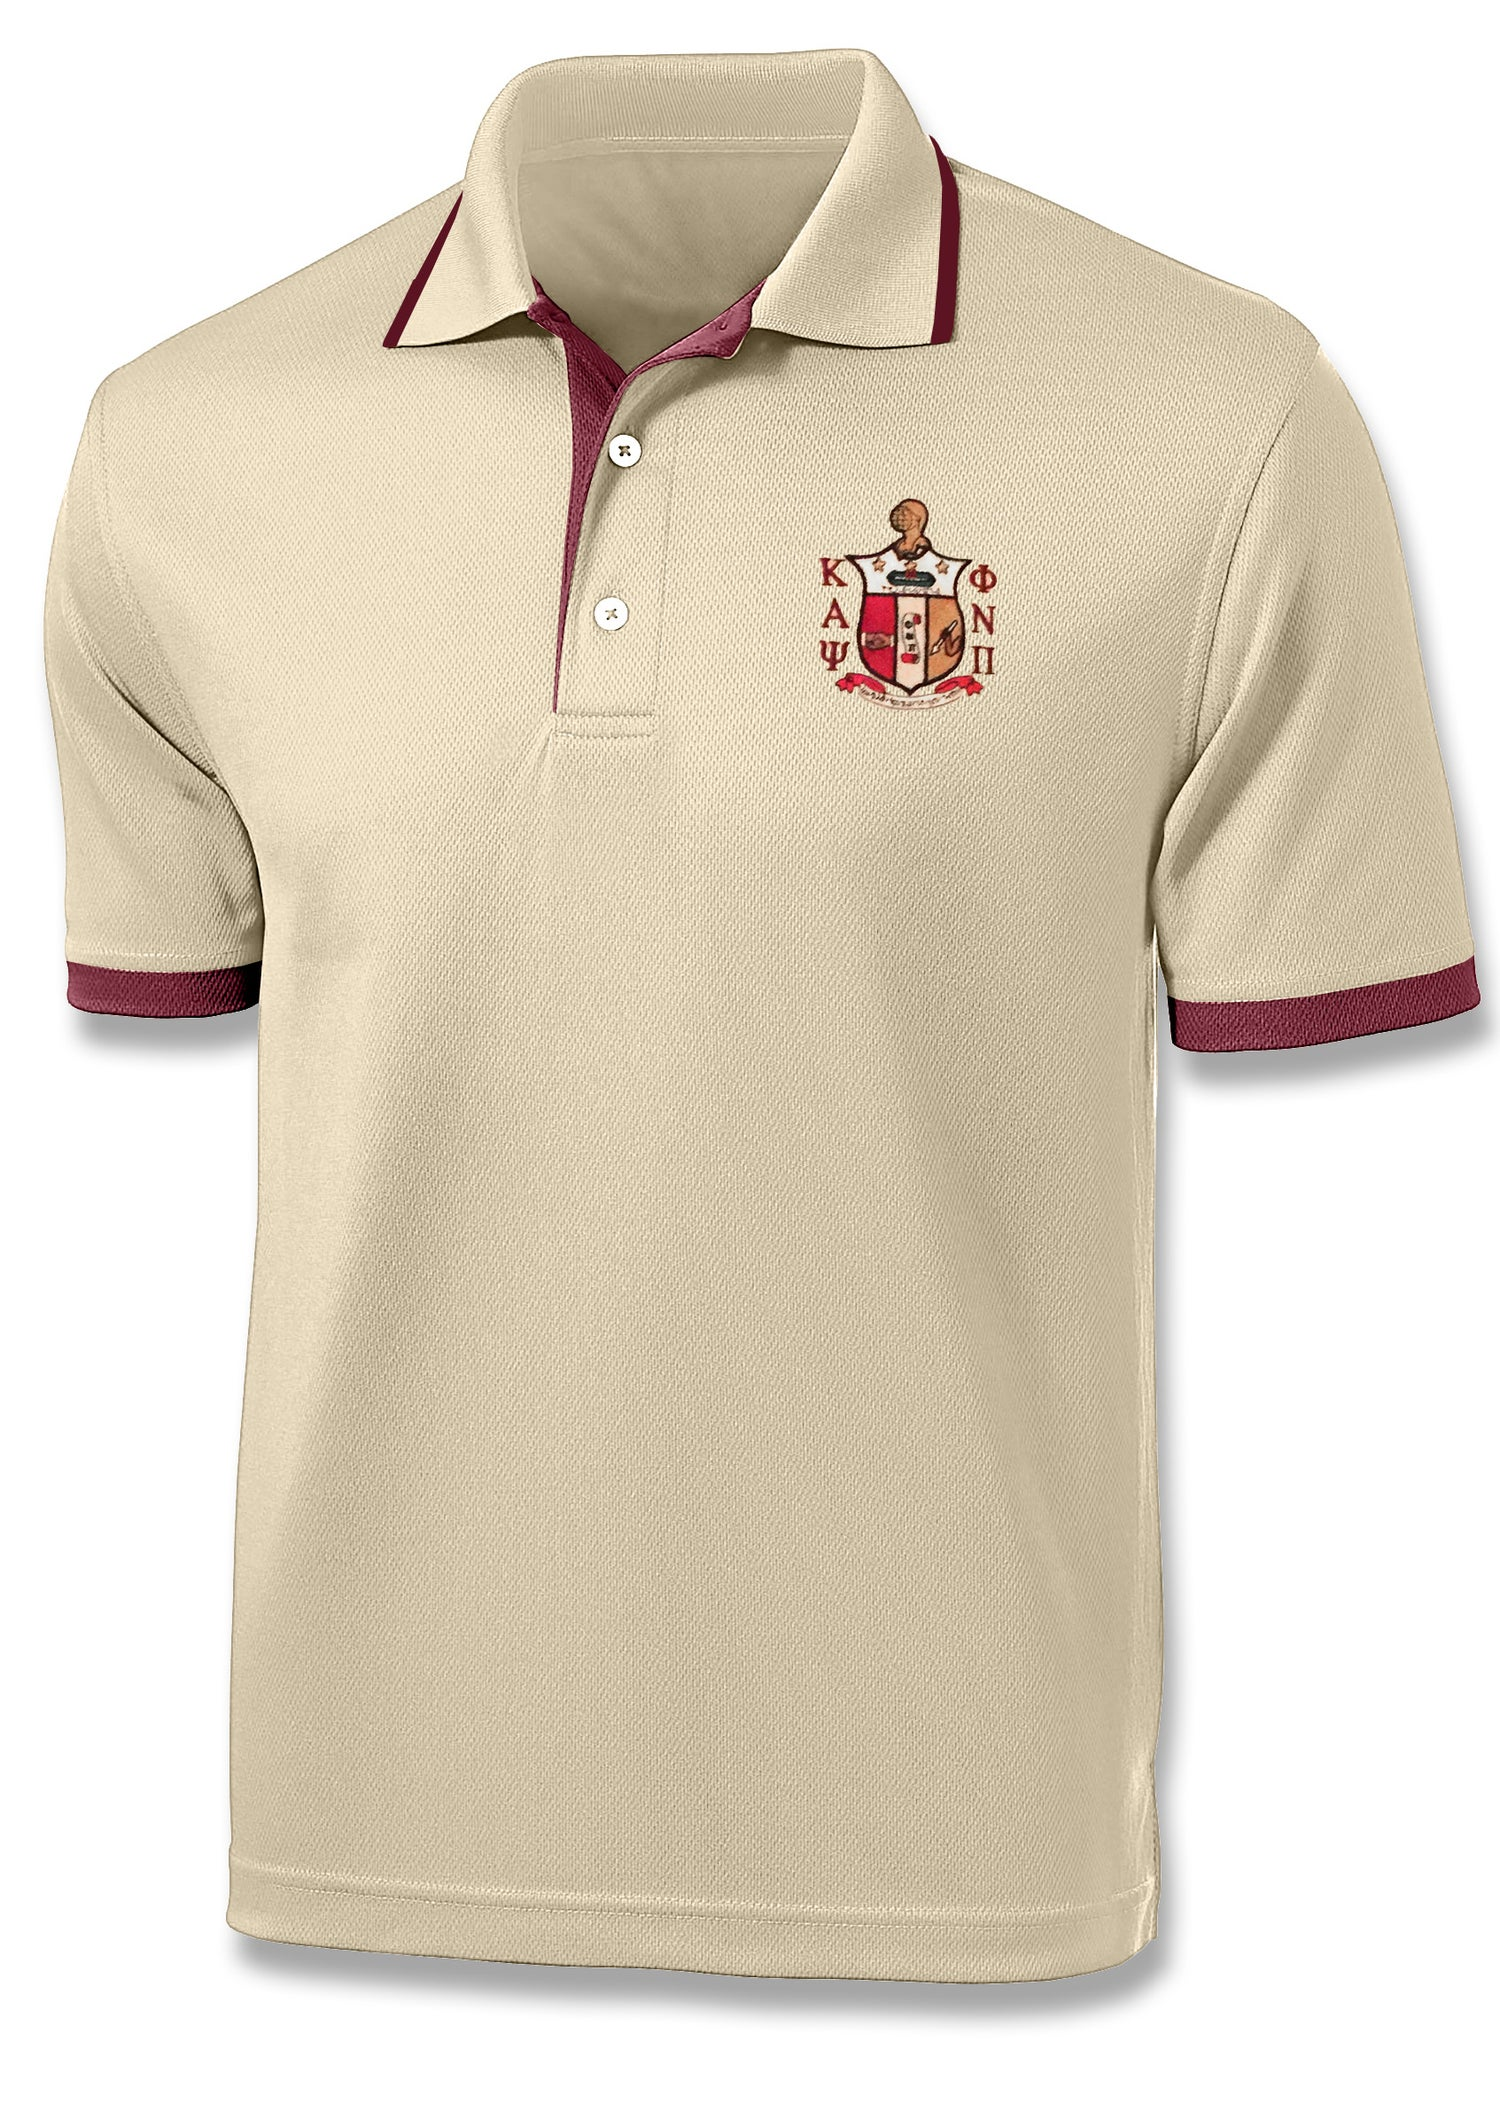 Image of Coat of Arms Polo - Cream